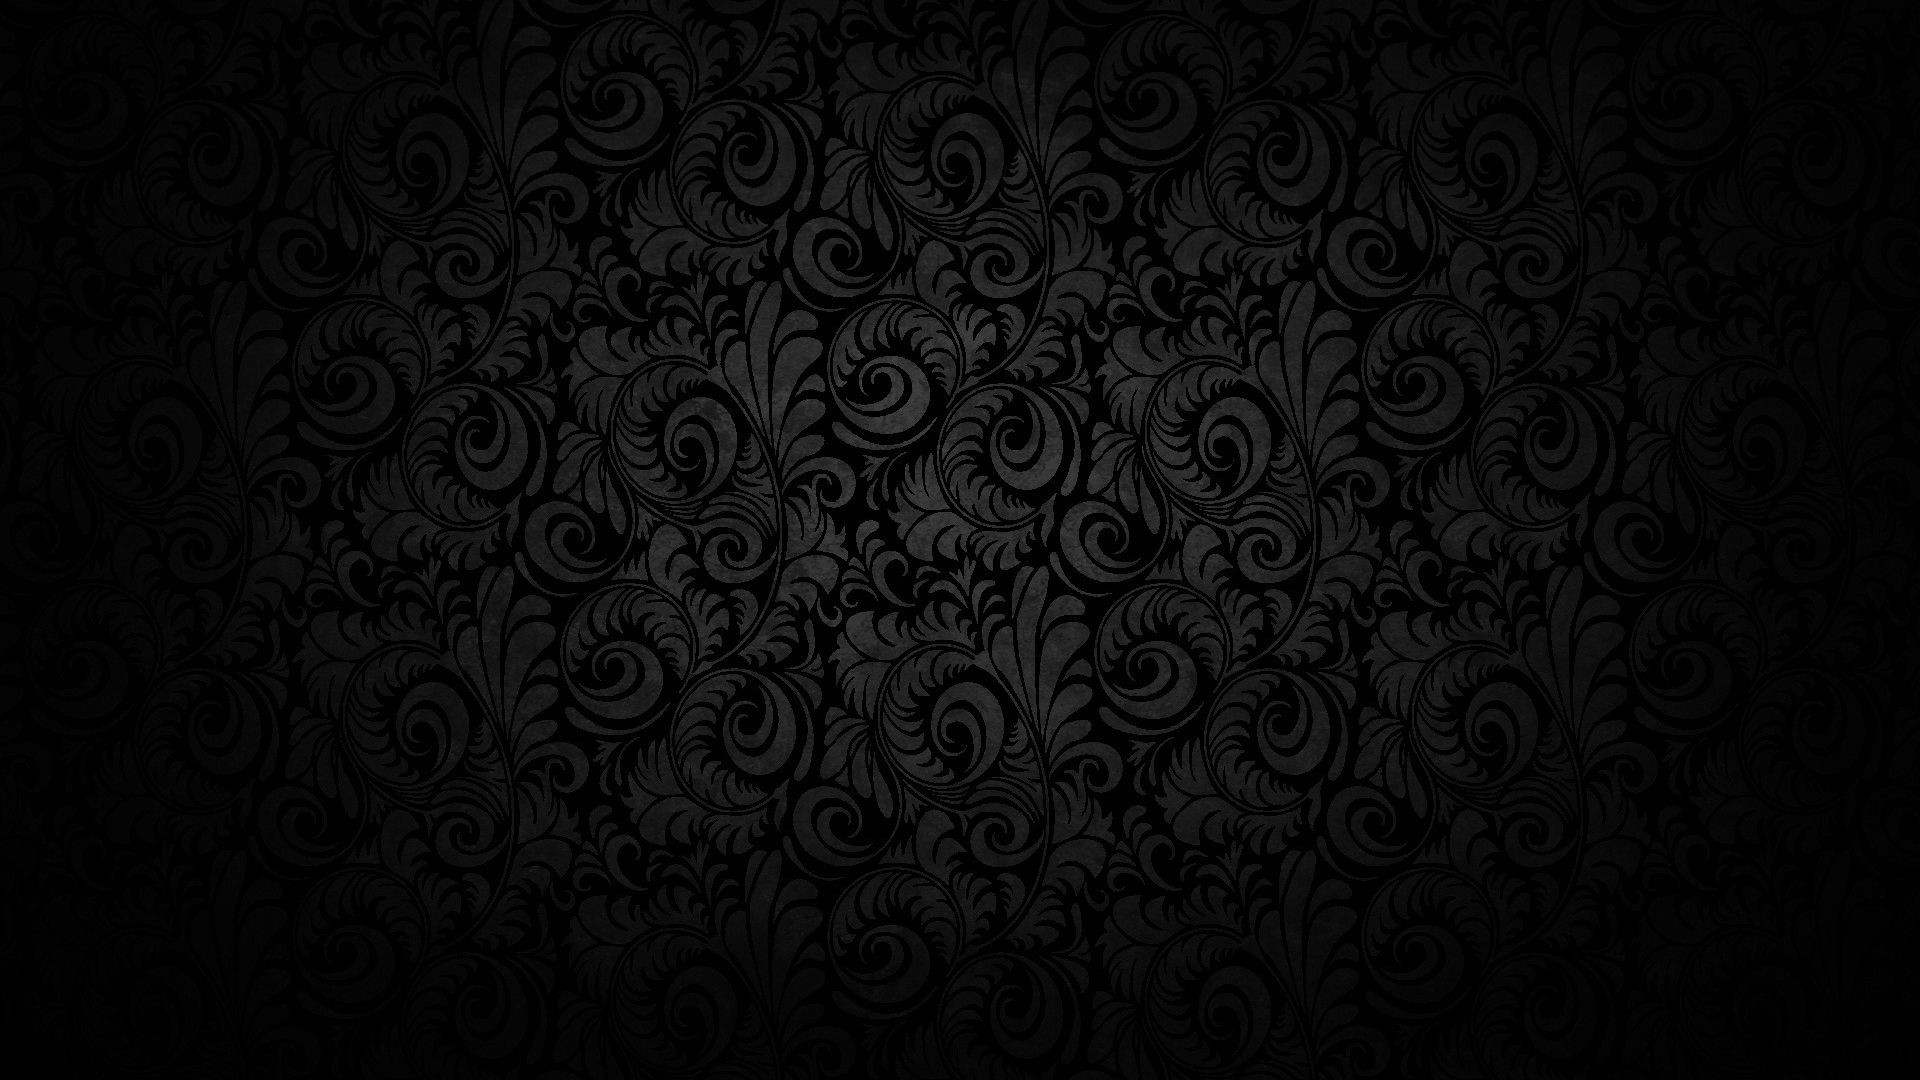 69 Dark Abstract Backgrounds Download Free Beautiful